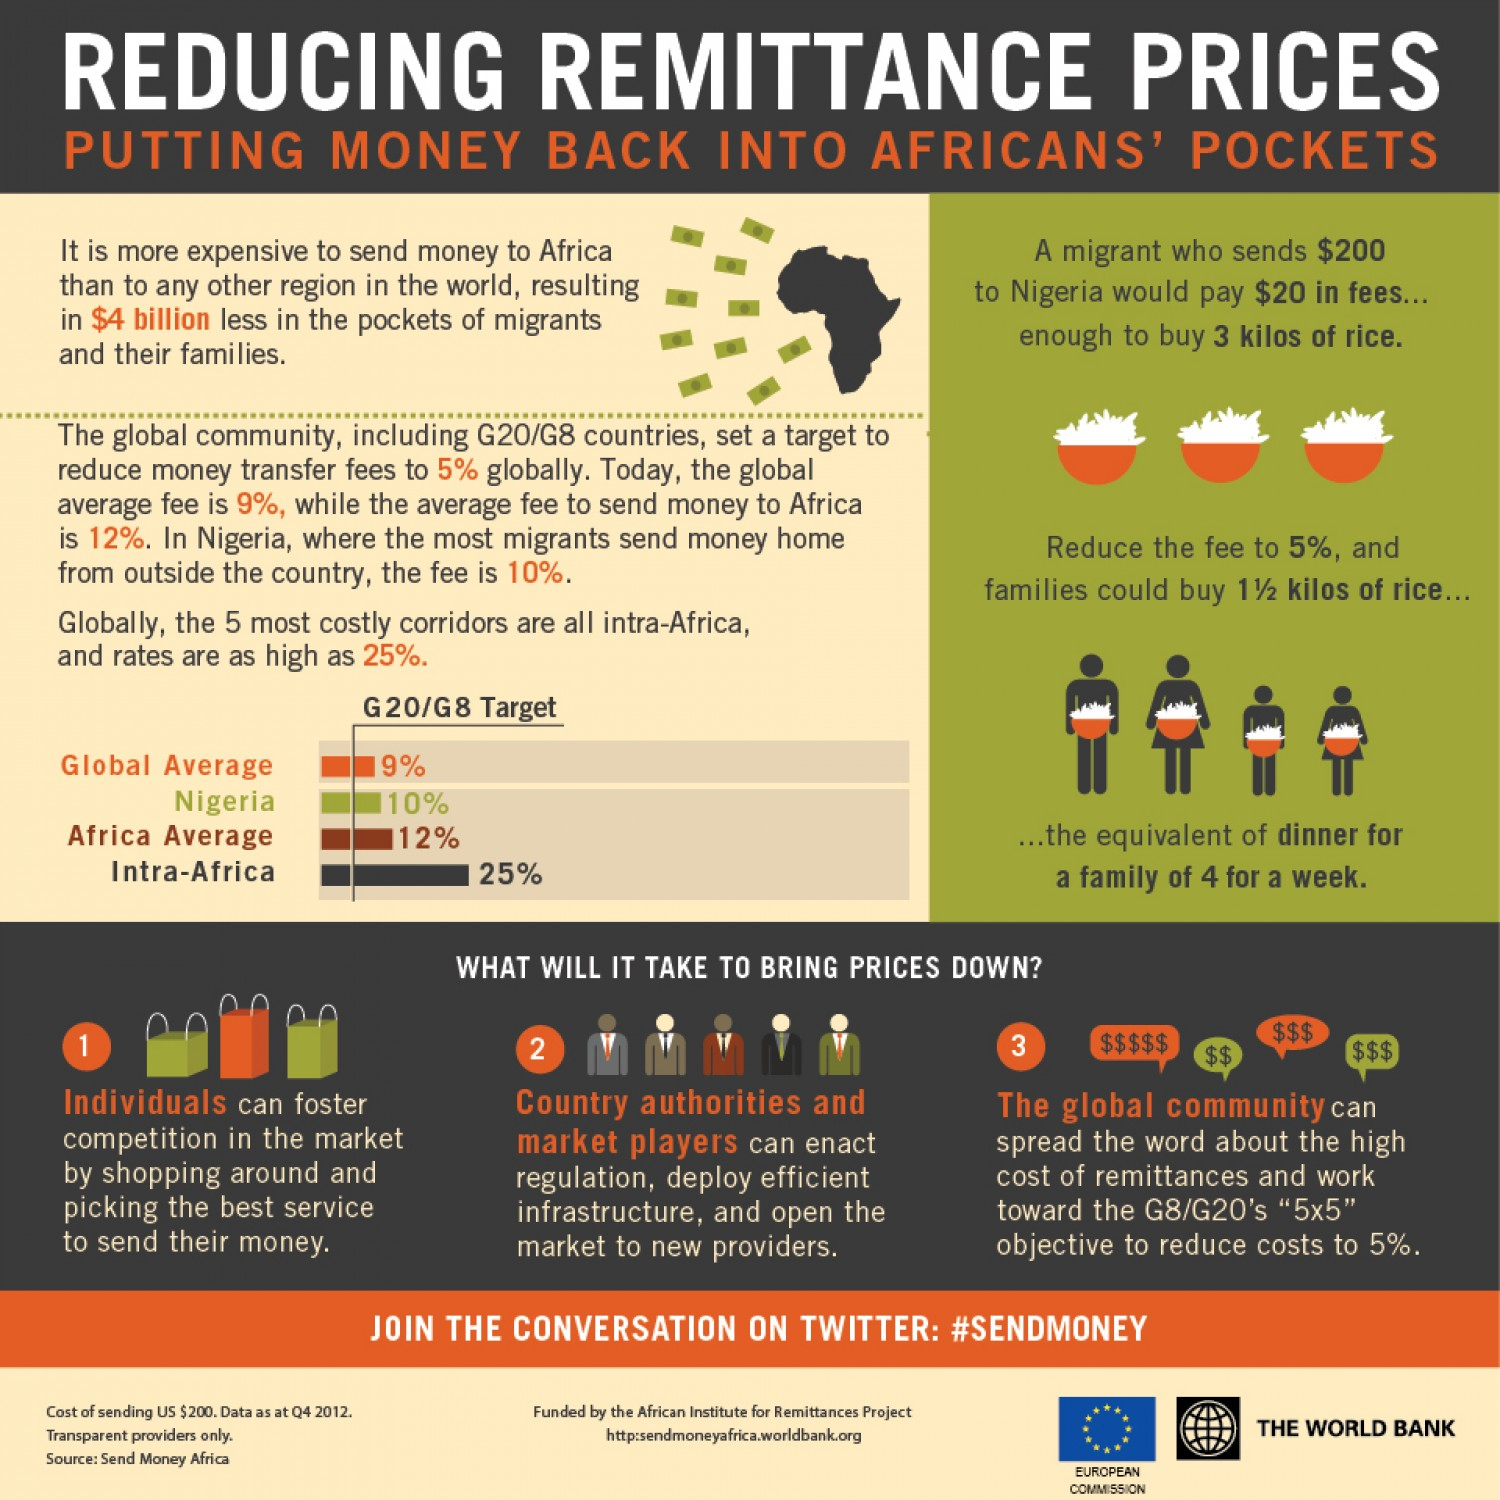 Reducing Remittance Payments